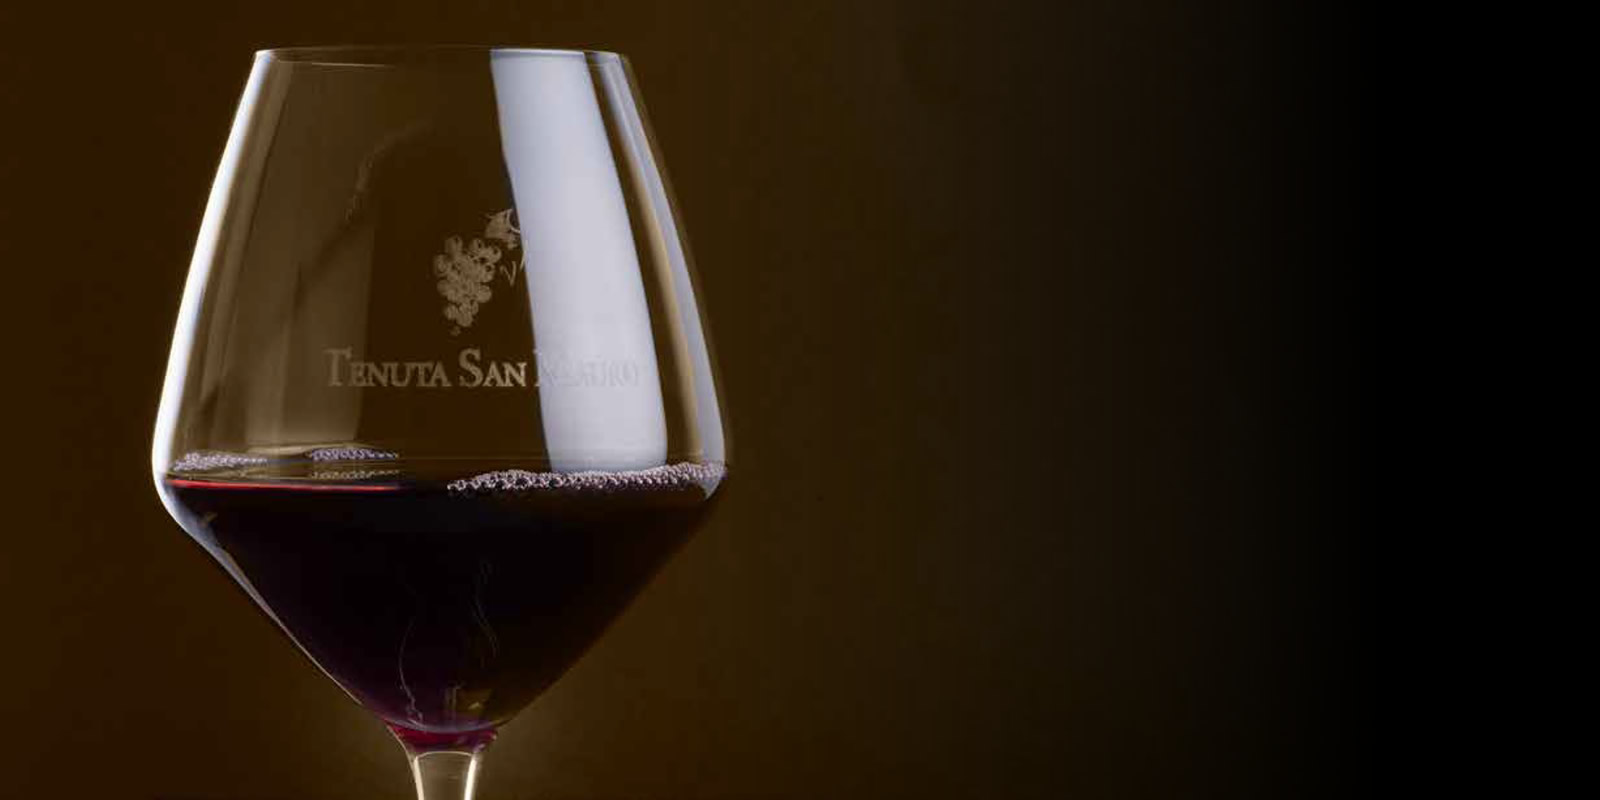 imagine...<br />wine as our passion